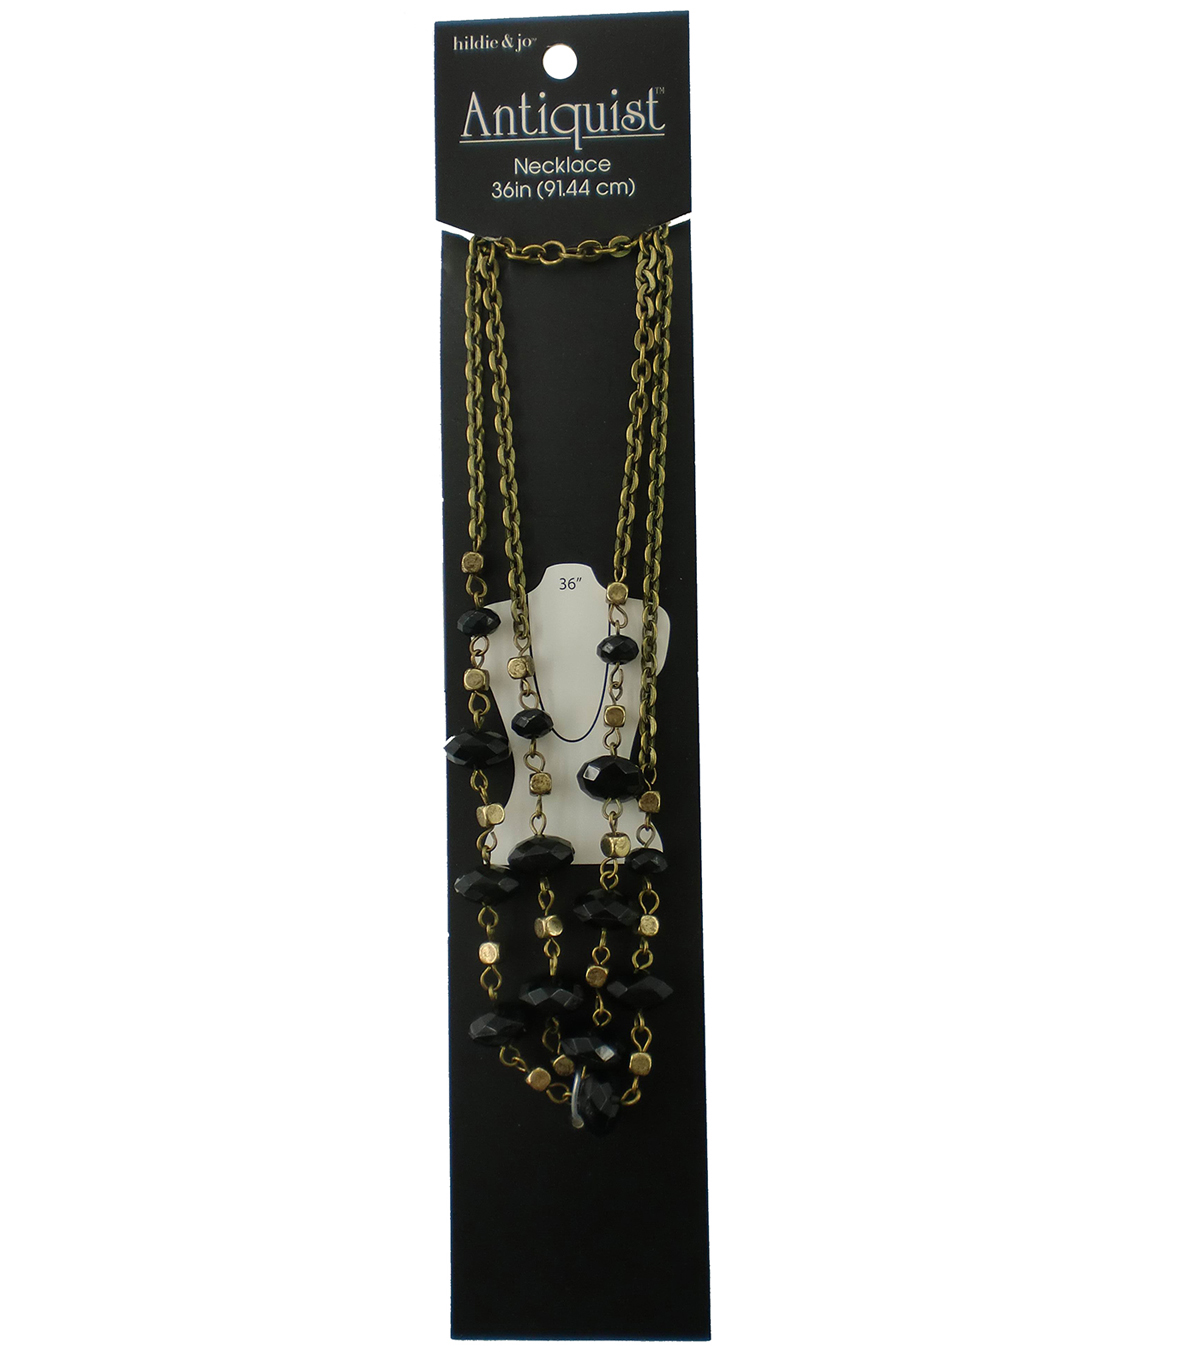 hildie & jo™ Antiquist 36\u0027\u0027 Antique Gold Necklace-Black/Gold Beads